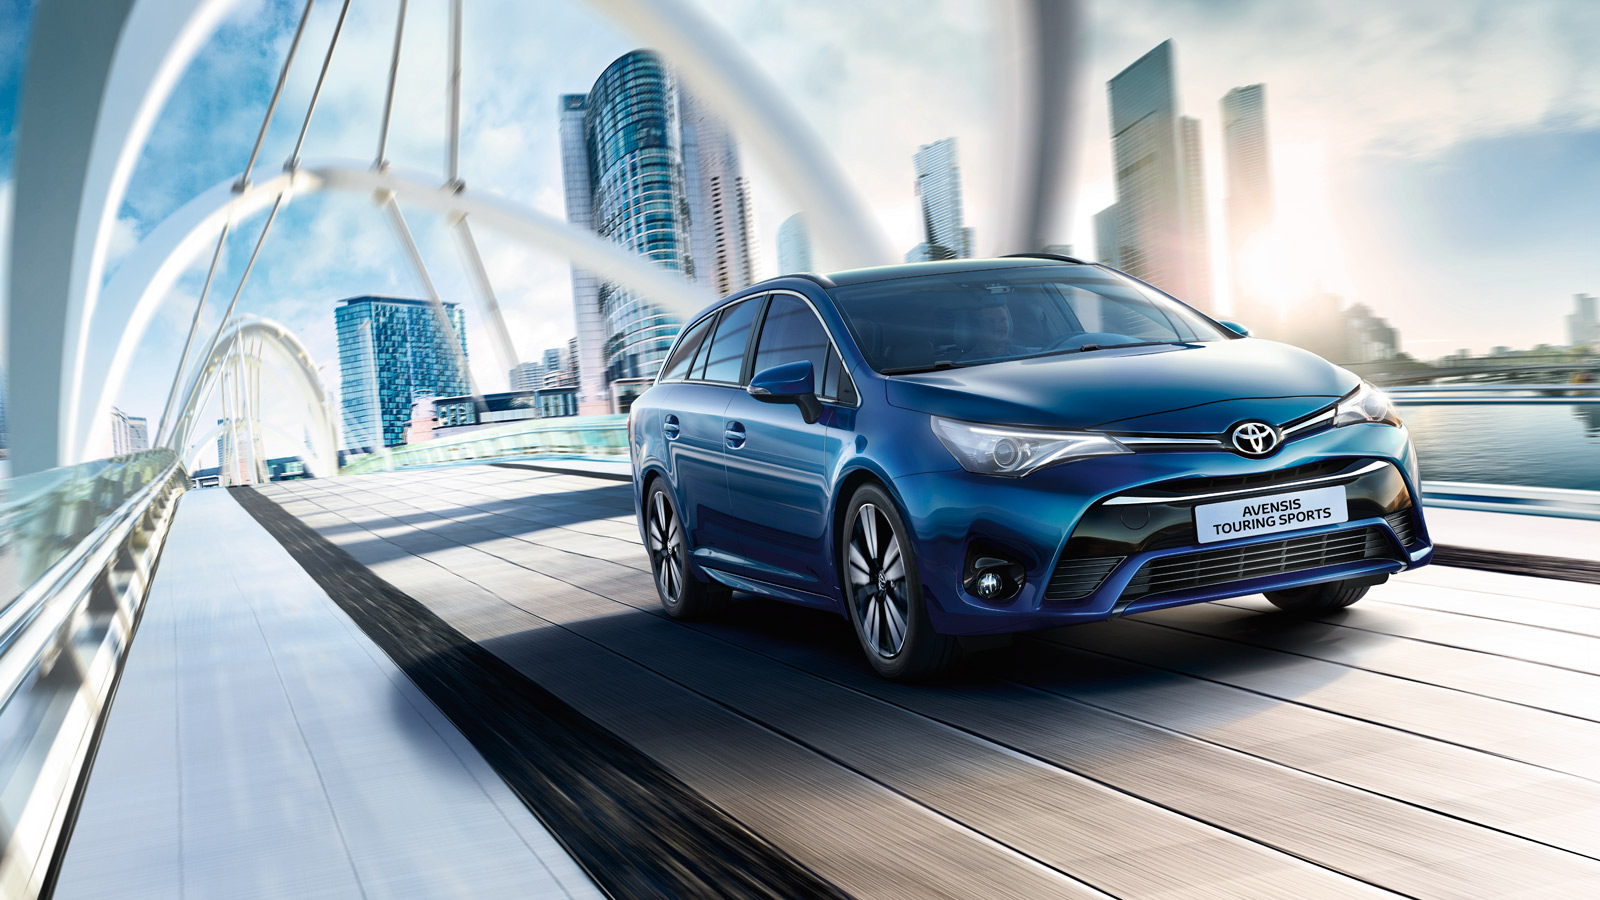 Toyota Avensis exterior, Blue, front side view, driving over a bridge, daytime city background